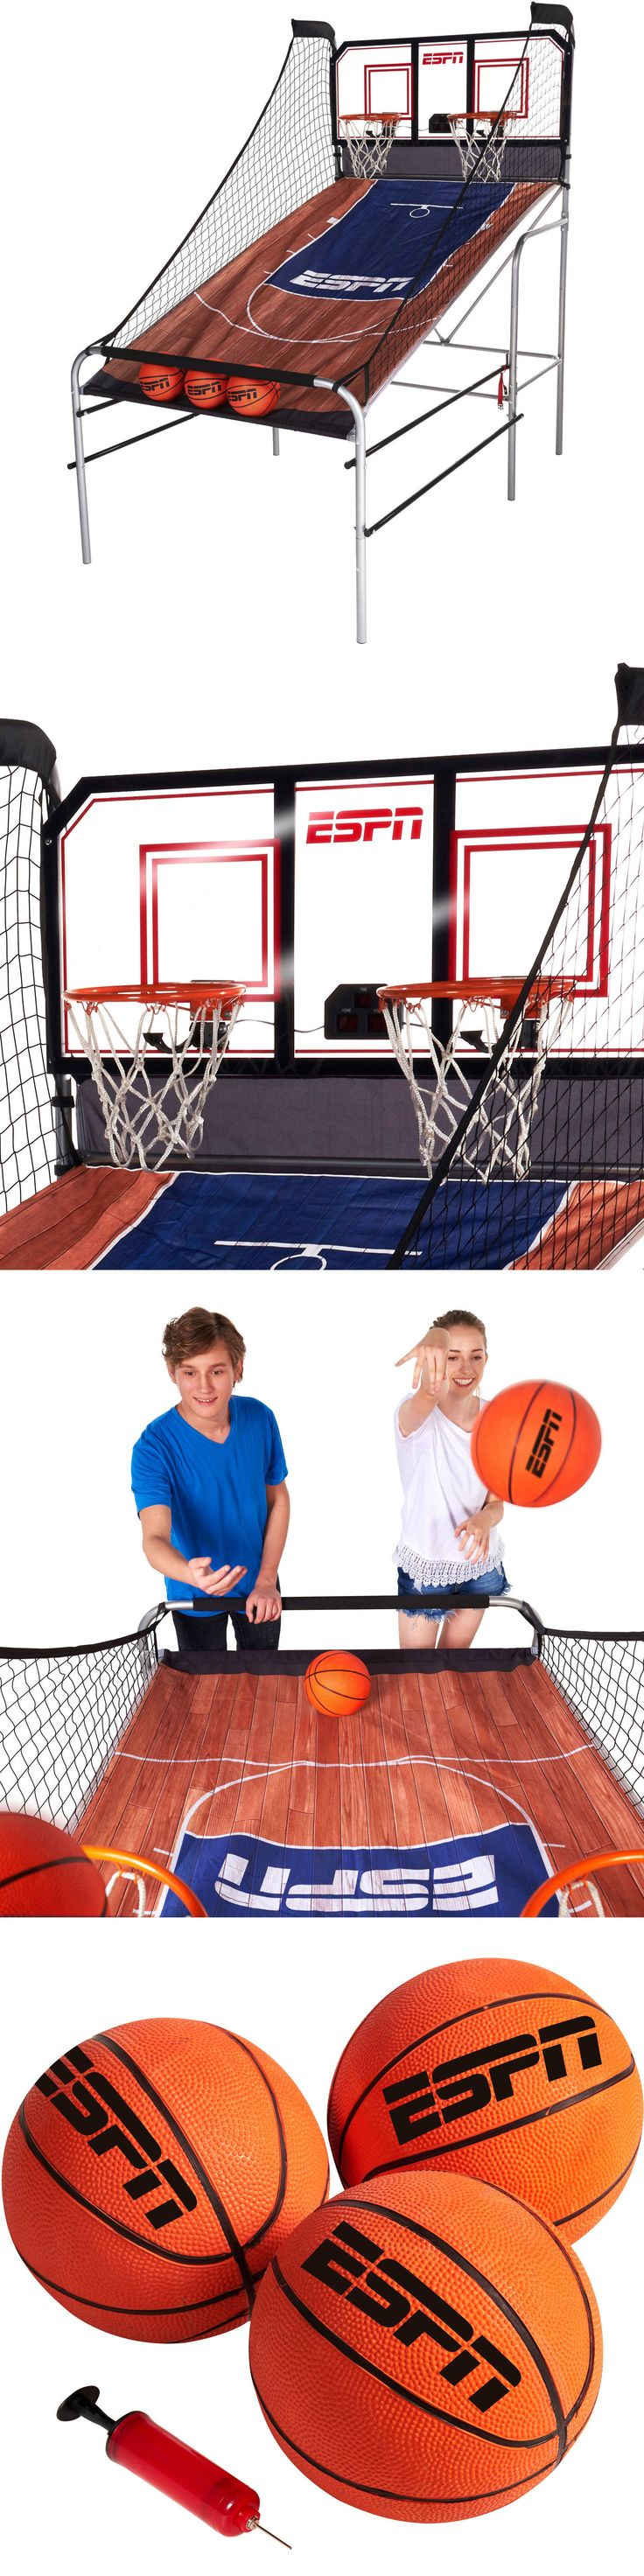 Other Indoor Games 36278: Espn Basketball Game Indoor Electronic Arcade Sports Kids 2 Player Heavy Duty BUY IT NOW ONLY: $145.21